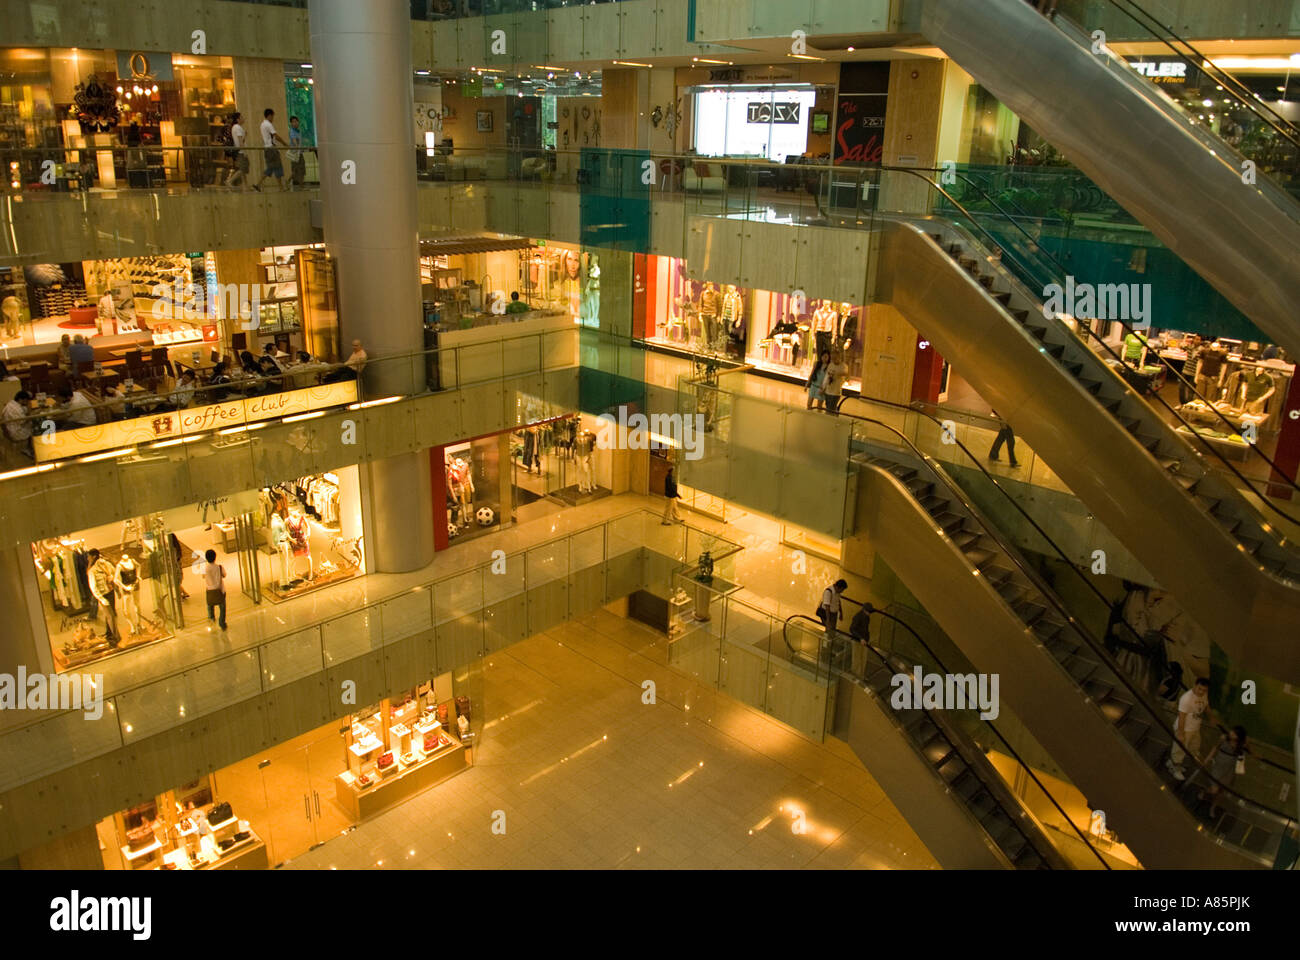 Paragon Shopping Mall in Orchard Road, Singapore. - Stock Image